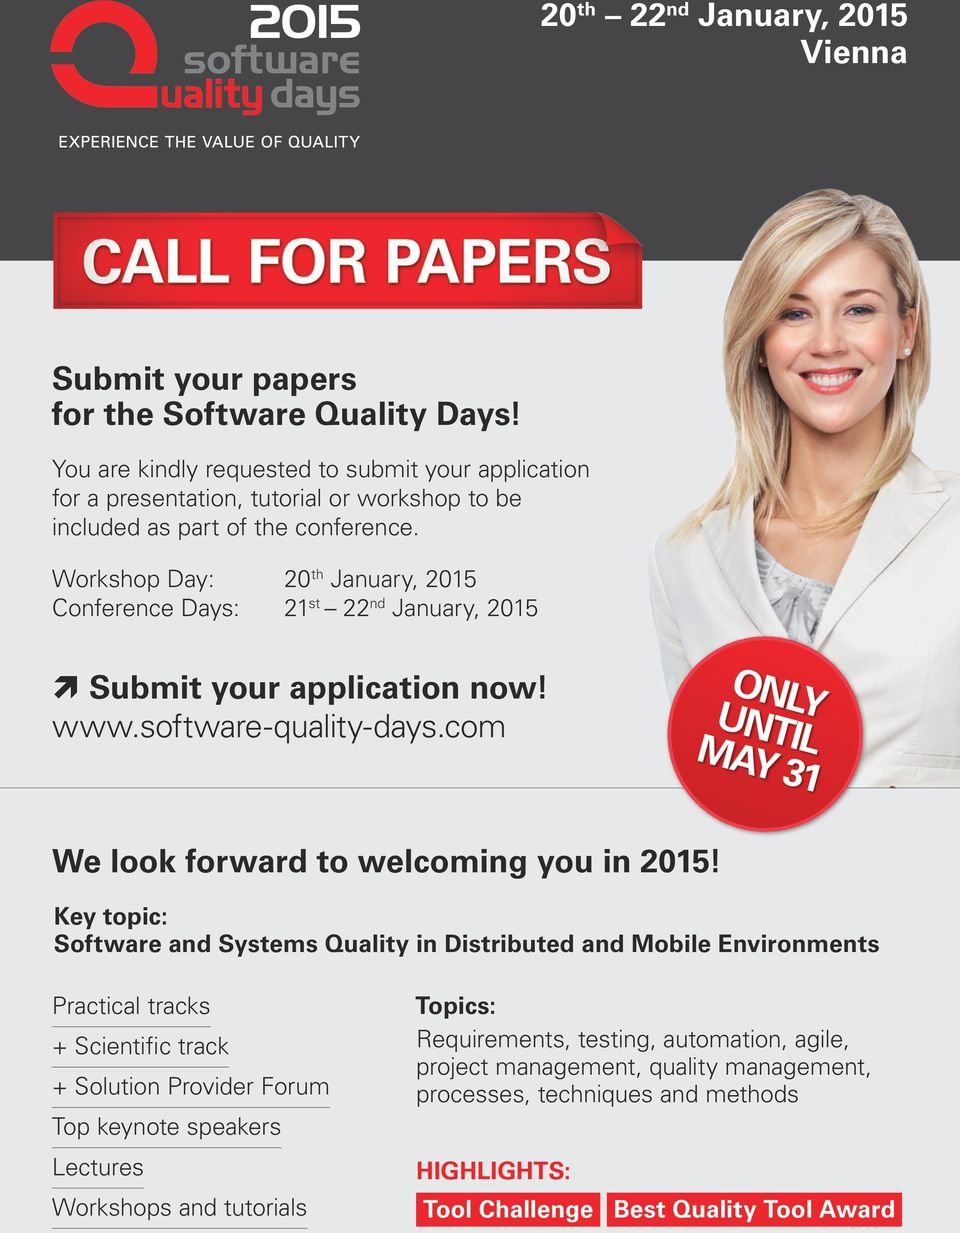 Workshop Day: 20 th January, 2015 Conference Days: 21 st 22 nd January, 2015 Submit your application now! www.software-quality-days.com only until may 31 We look forward to welcoming you in 2015!